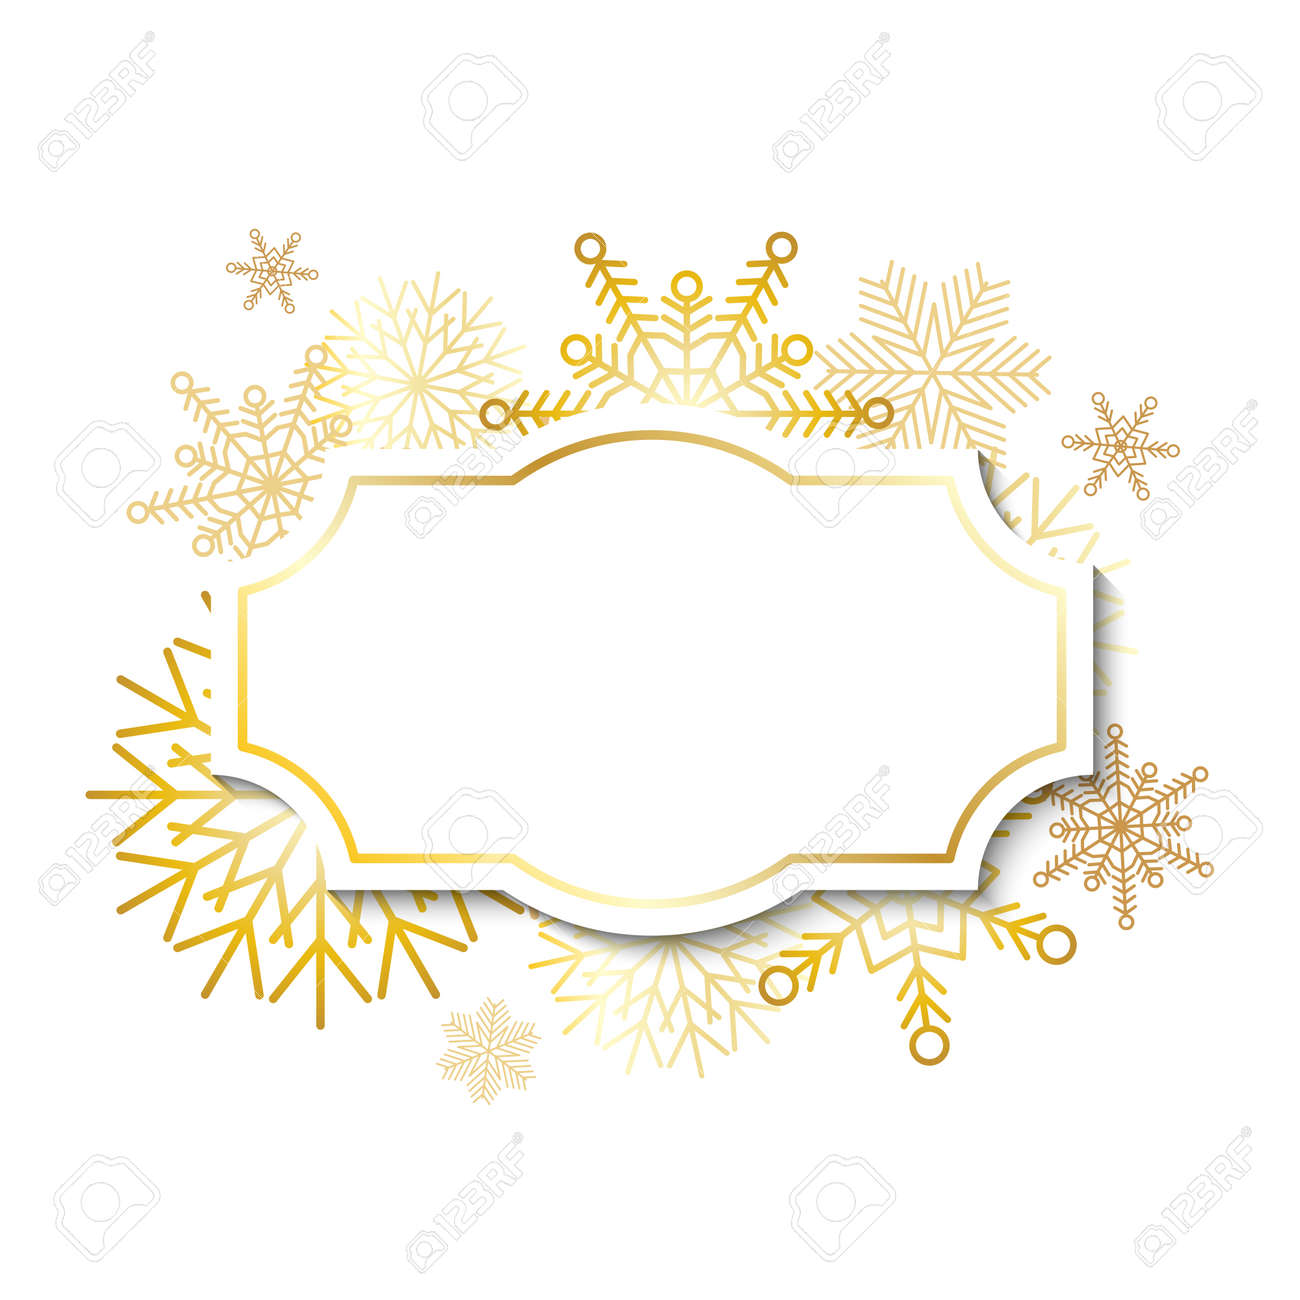 Winter vintage label template with gold frame on gold snowflakes